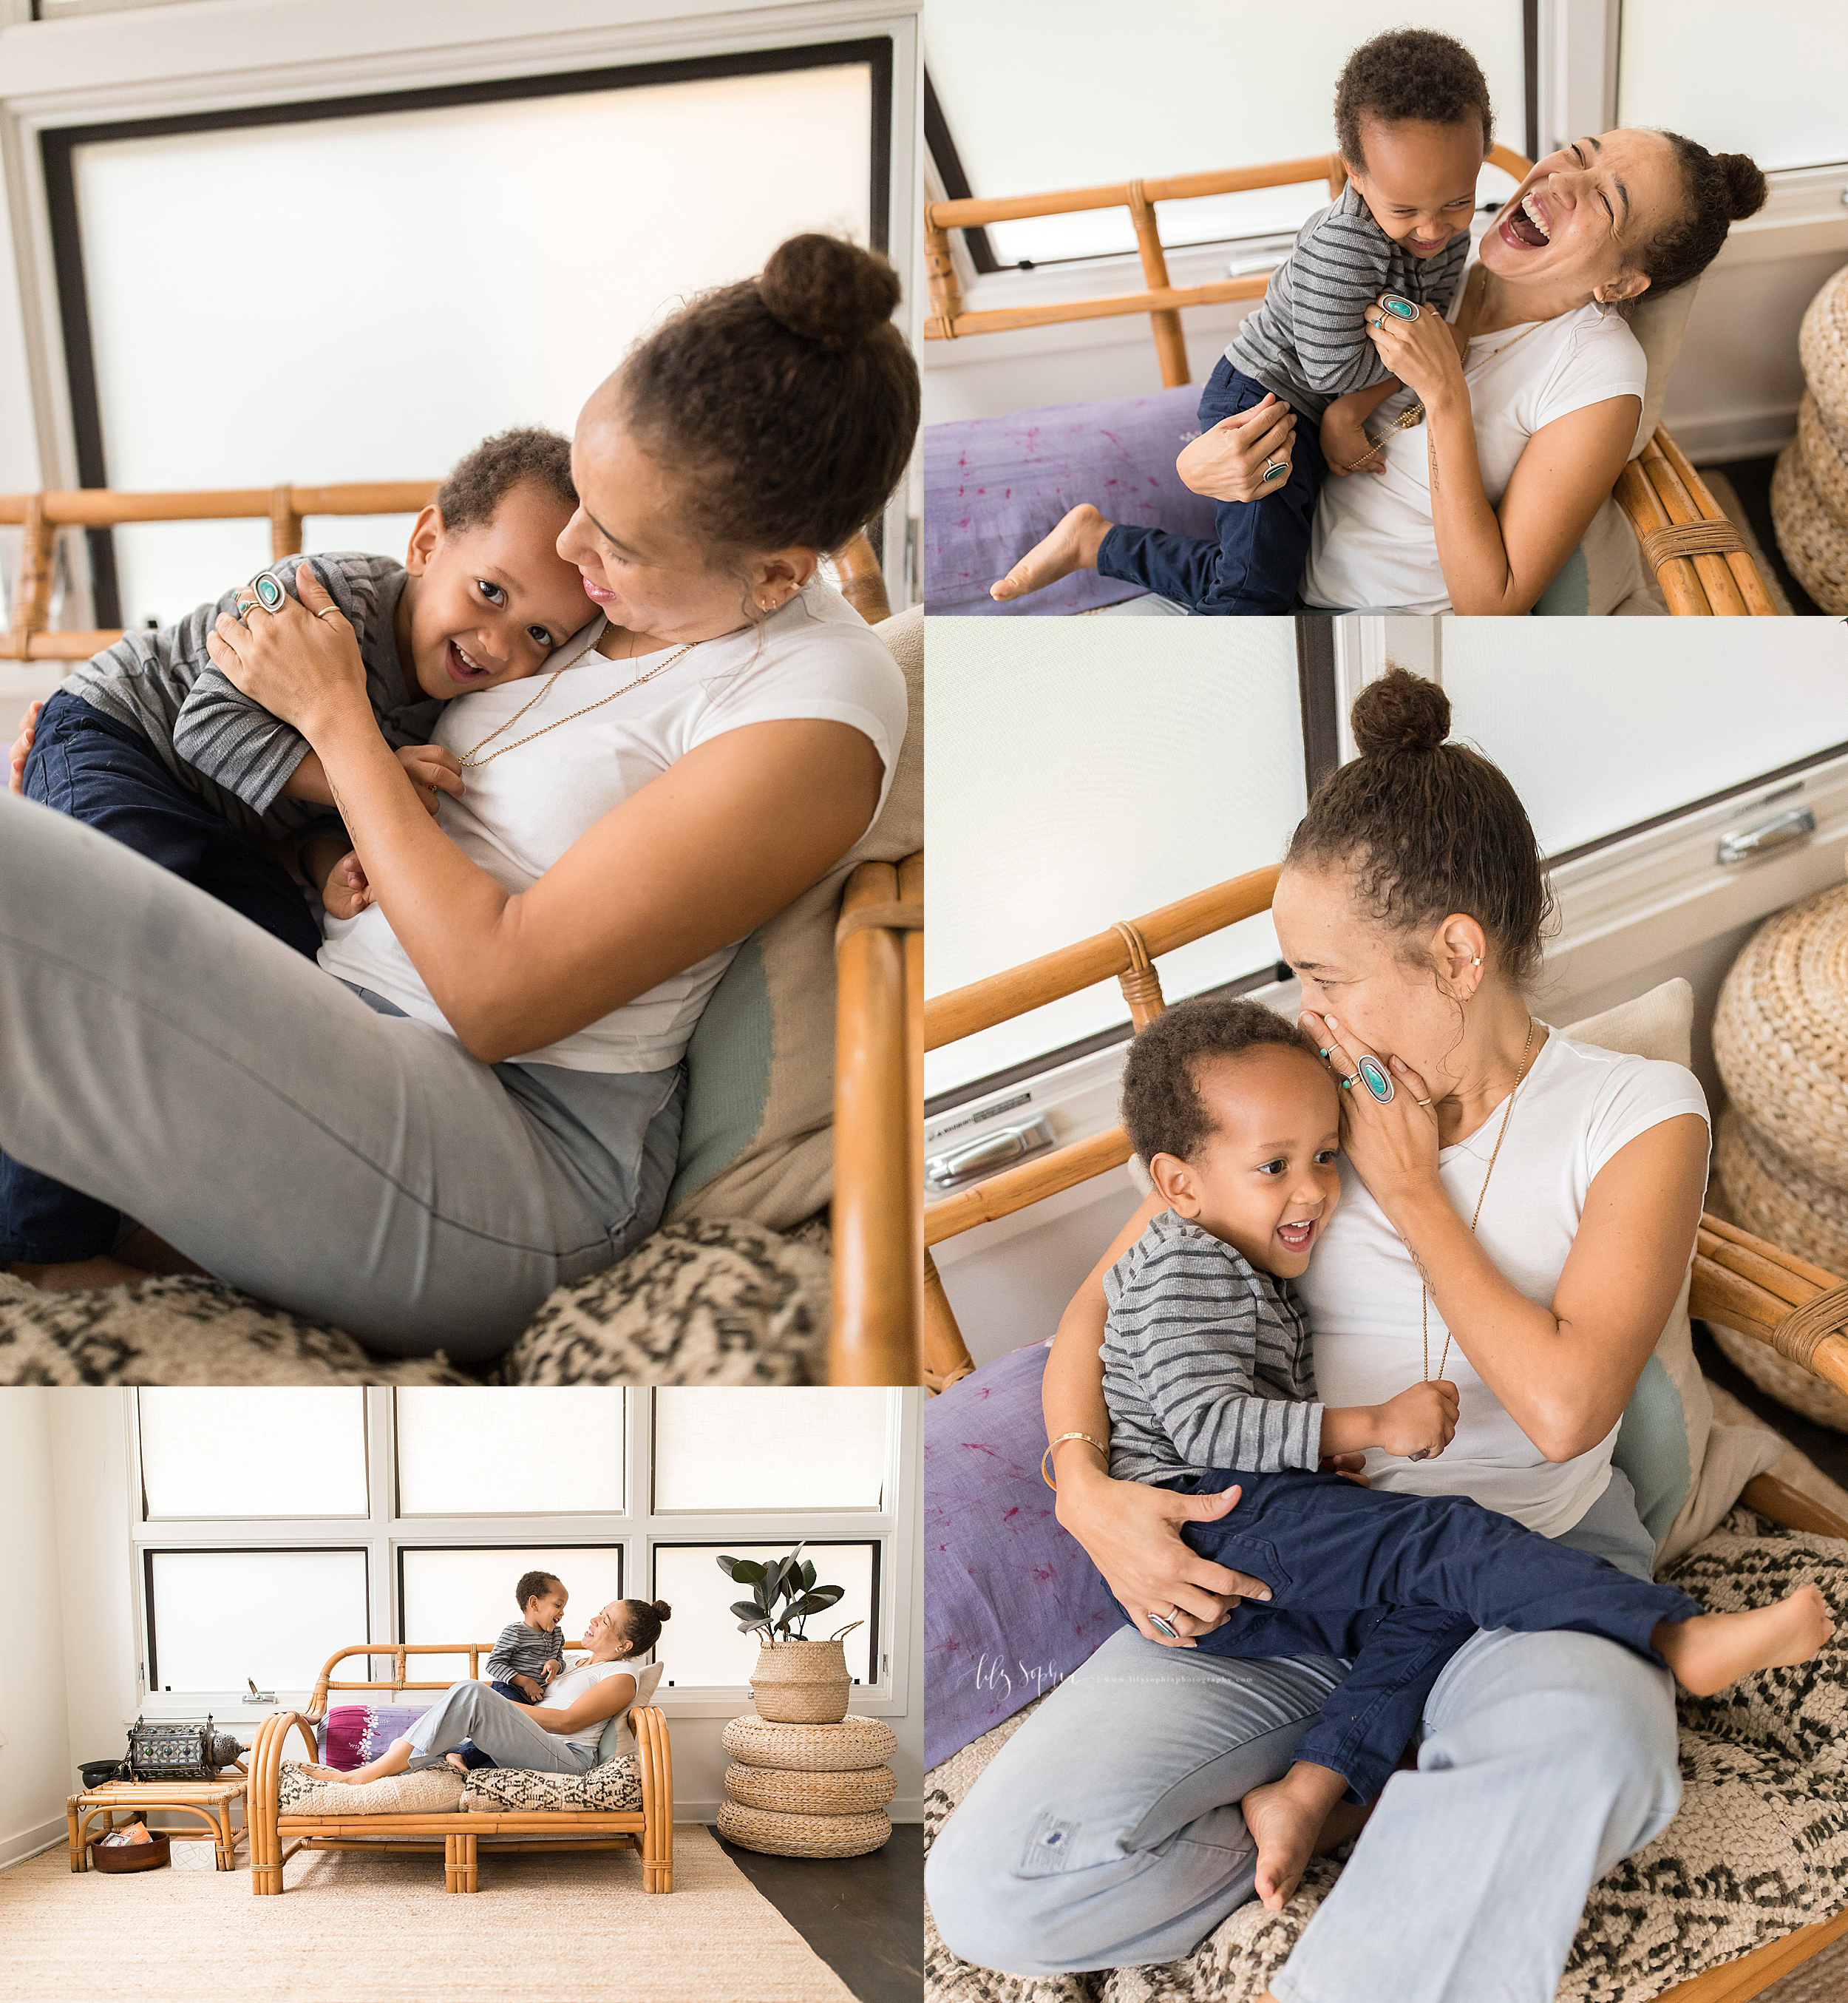 atlanta-midtown-inman-grant-park-beltline-old-fourth-ward-lily-sophia-photography-in-home-lifestyle-mommy-and-me-session-family-photographer-toddler-boy_0419.jpg